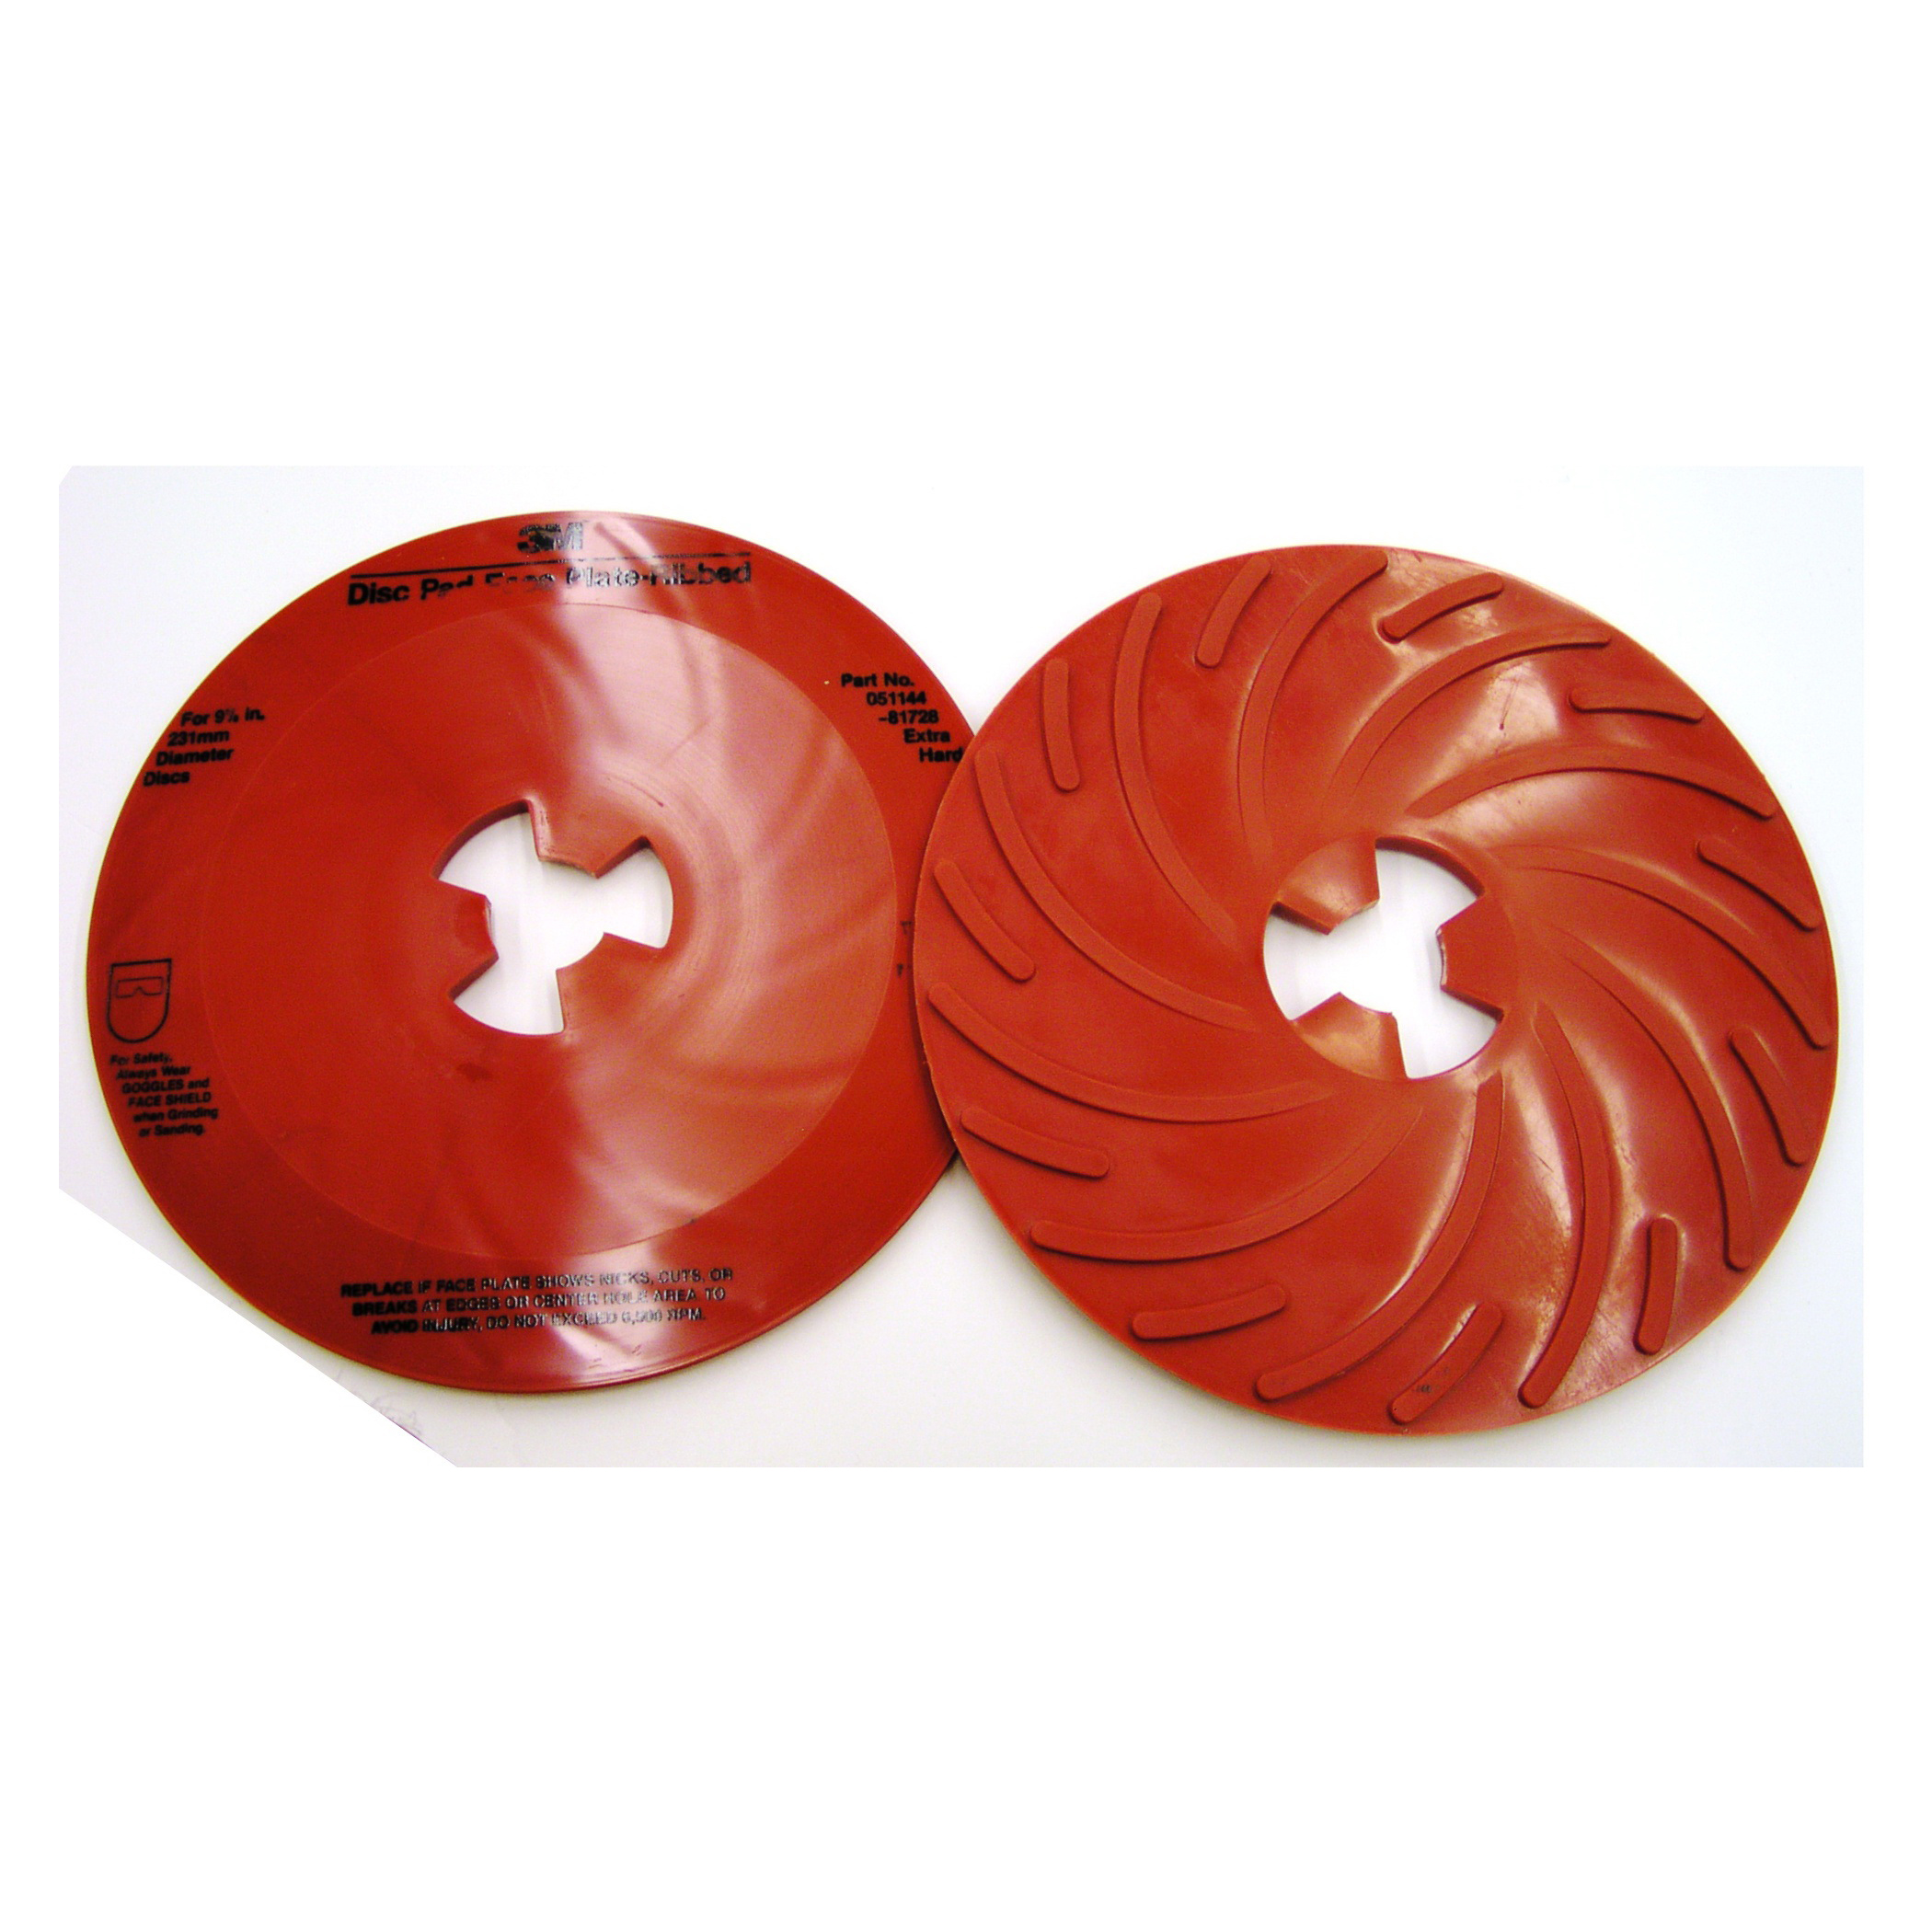 3M™ 051144-81728 Extra Hard Density Ribbed Disc Pad Face Plate, 9 in, For Use With 3M™ Disc Pad Hub, Right Angle Grinder and Rotary Sander